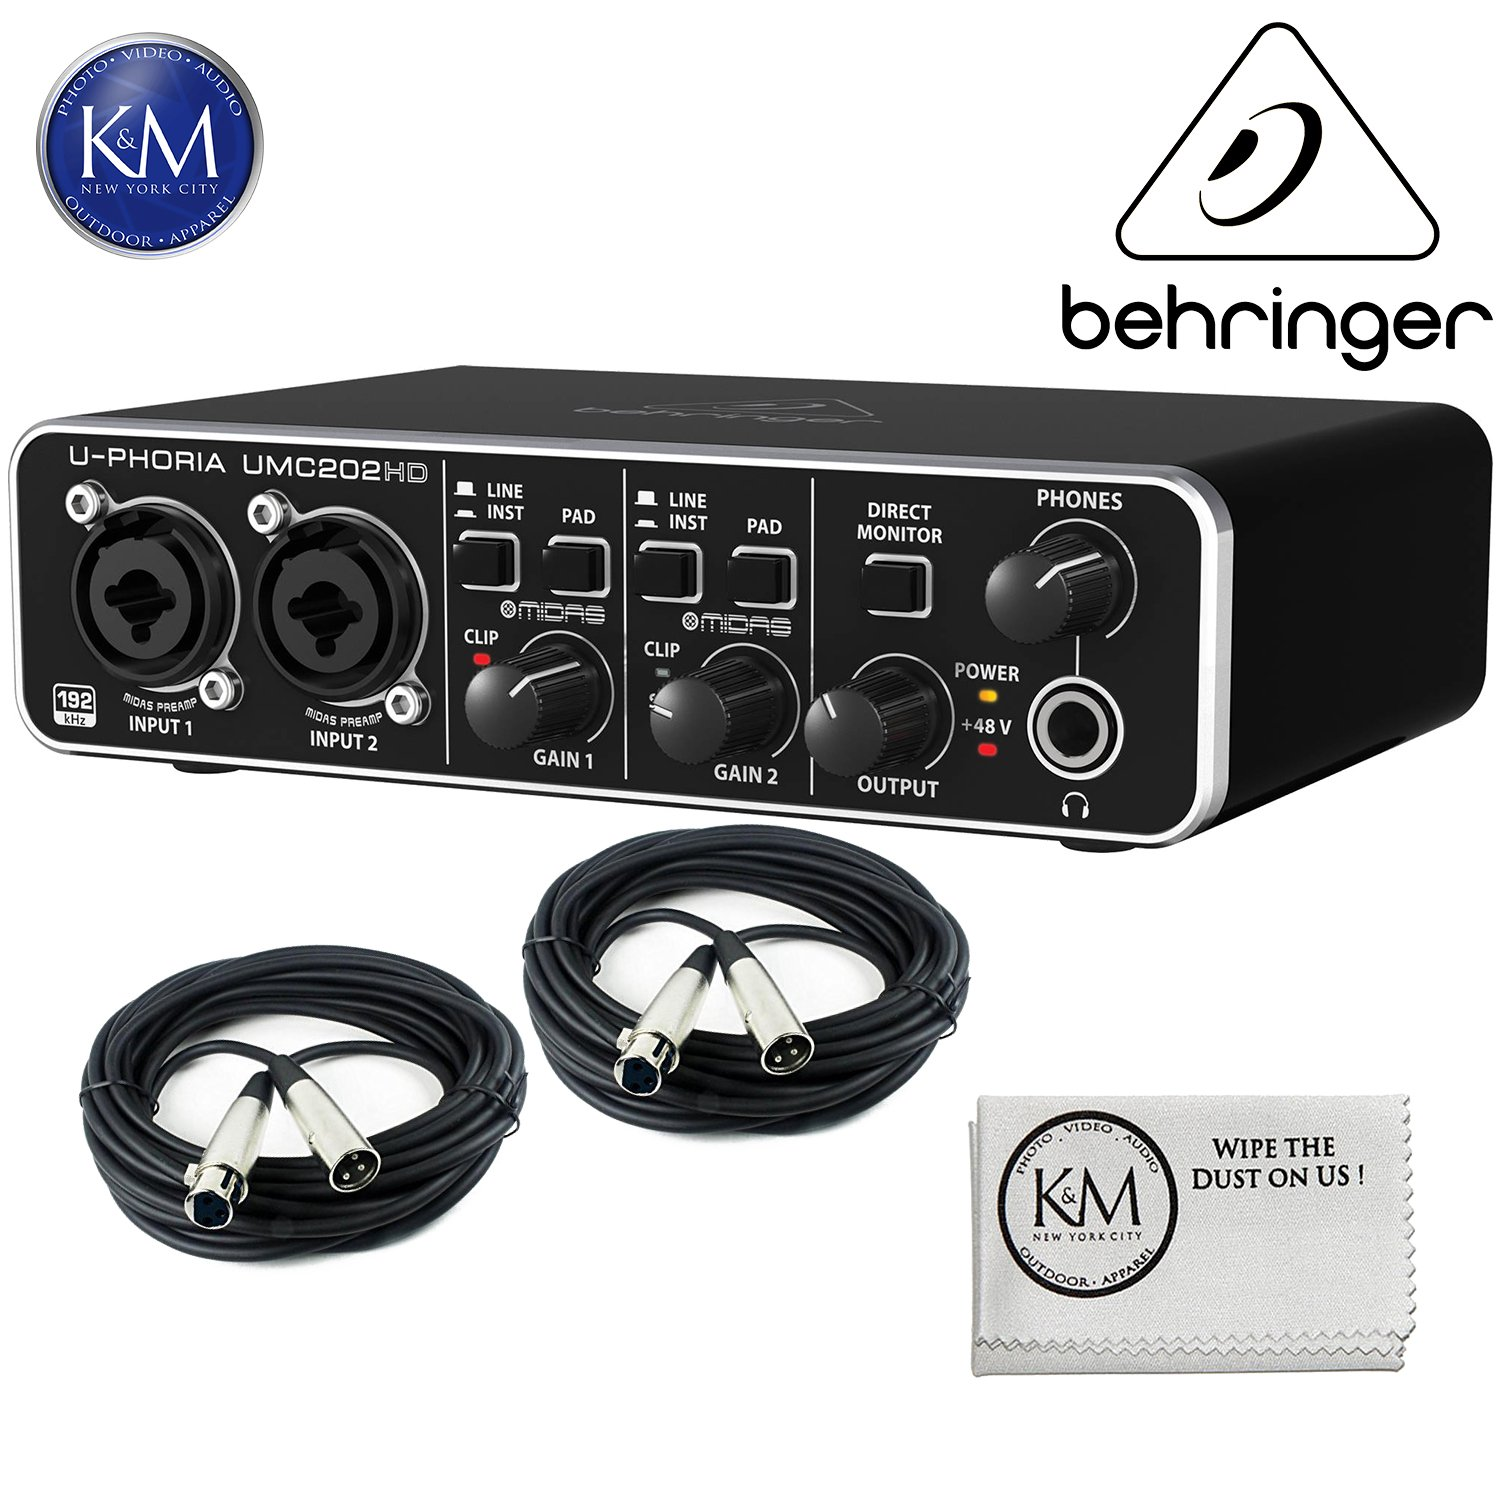 Behringer U-PHORIA UMC202HD - USB 2.0 Audio Interface w/2 x 20ft Structure XLR Cables and K&M Micro Fiber Cloth Bundle